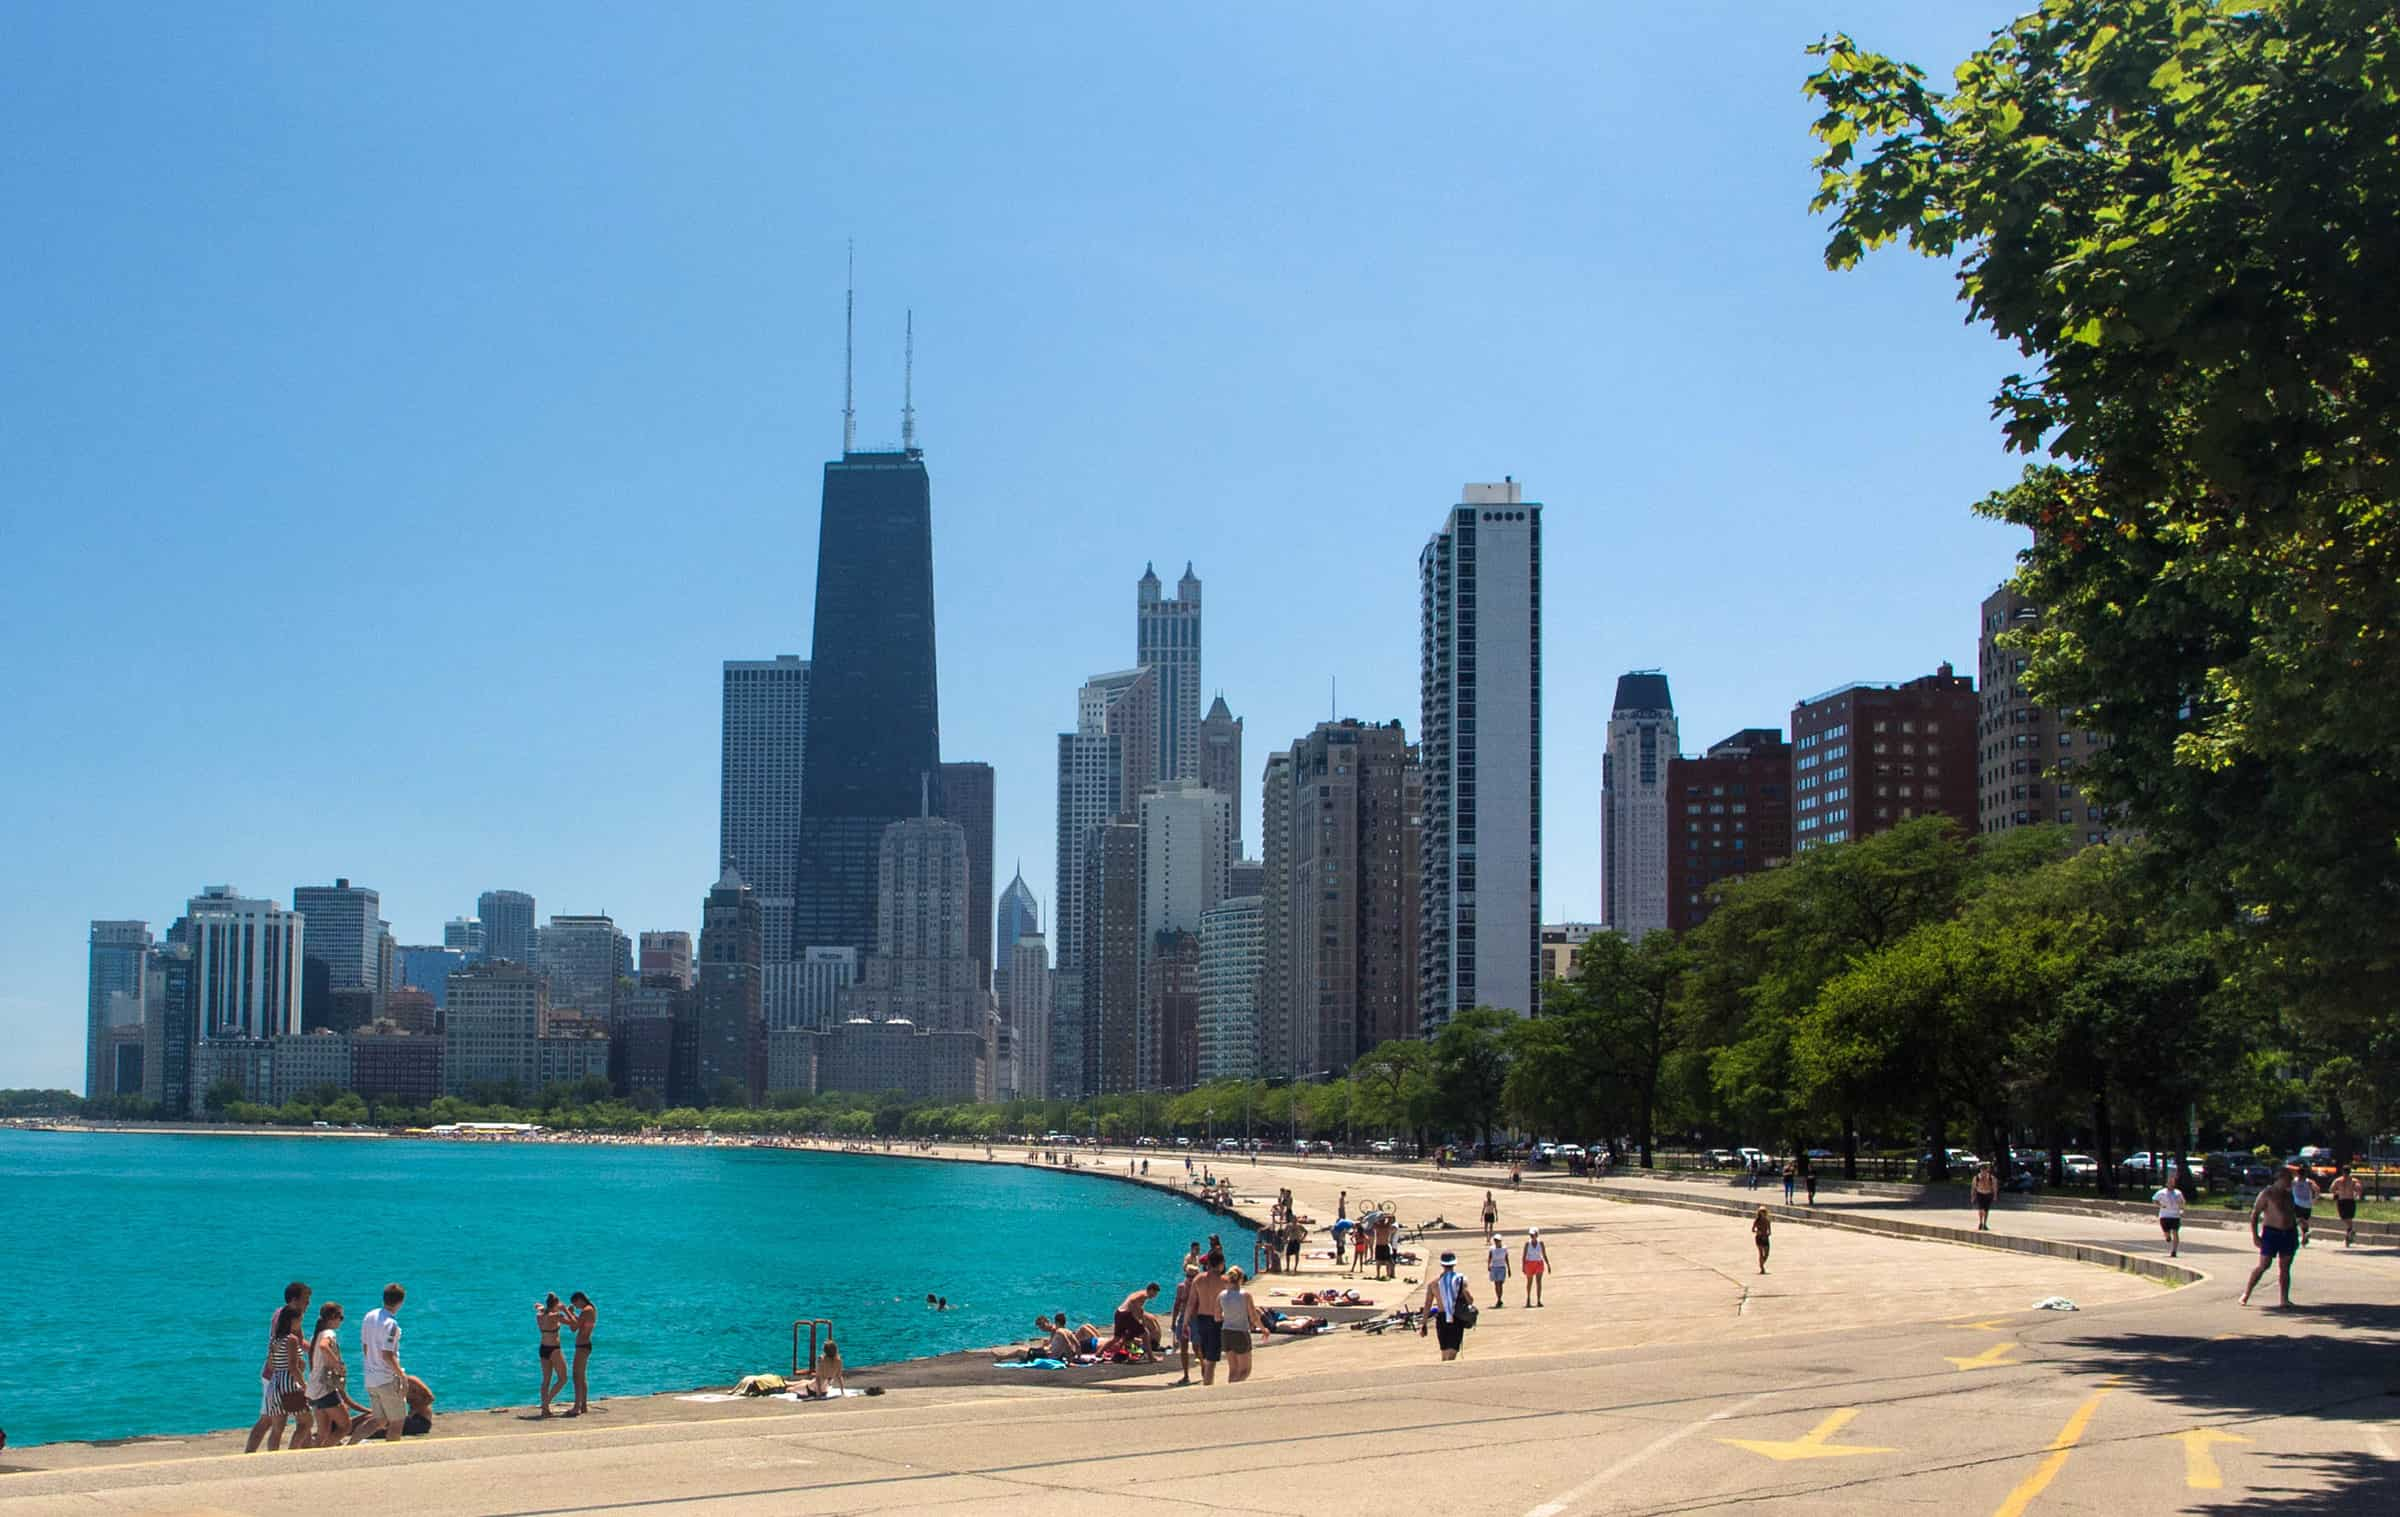 Lakefront Trail in Chicago